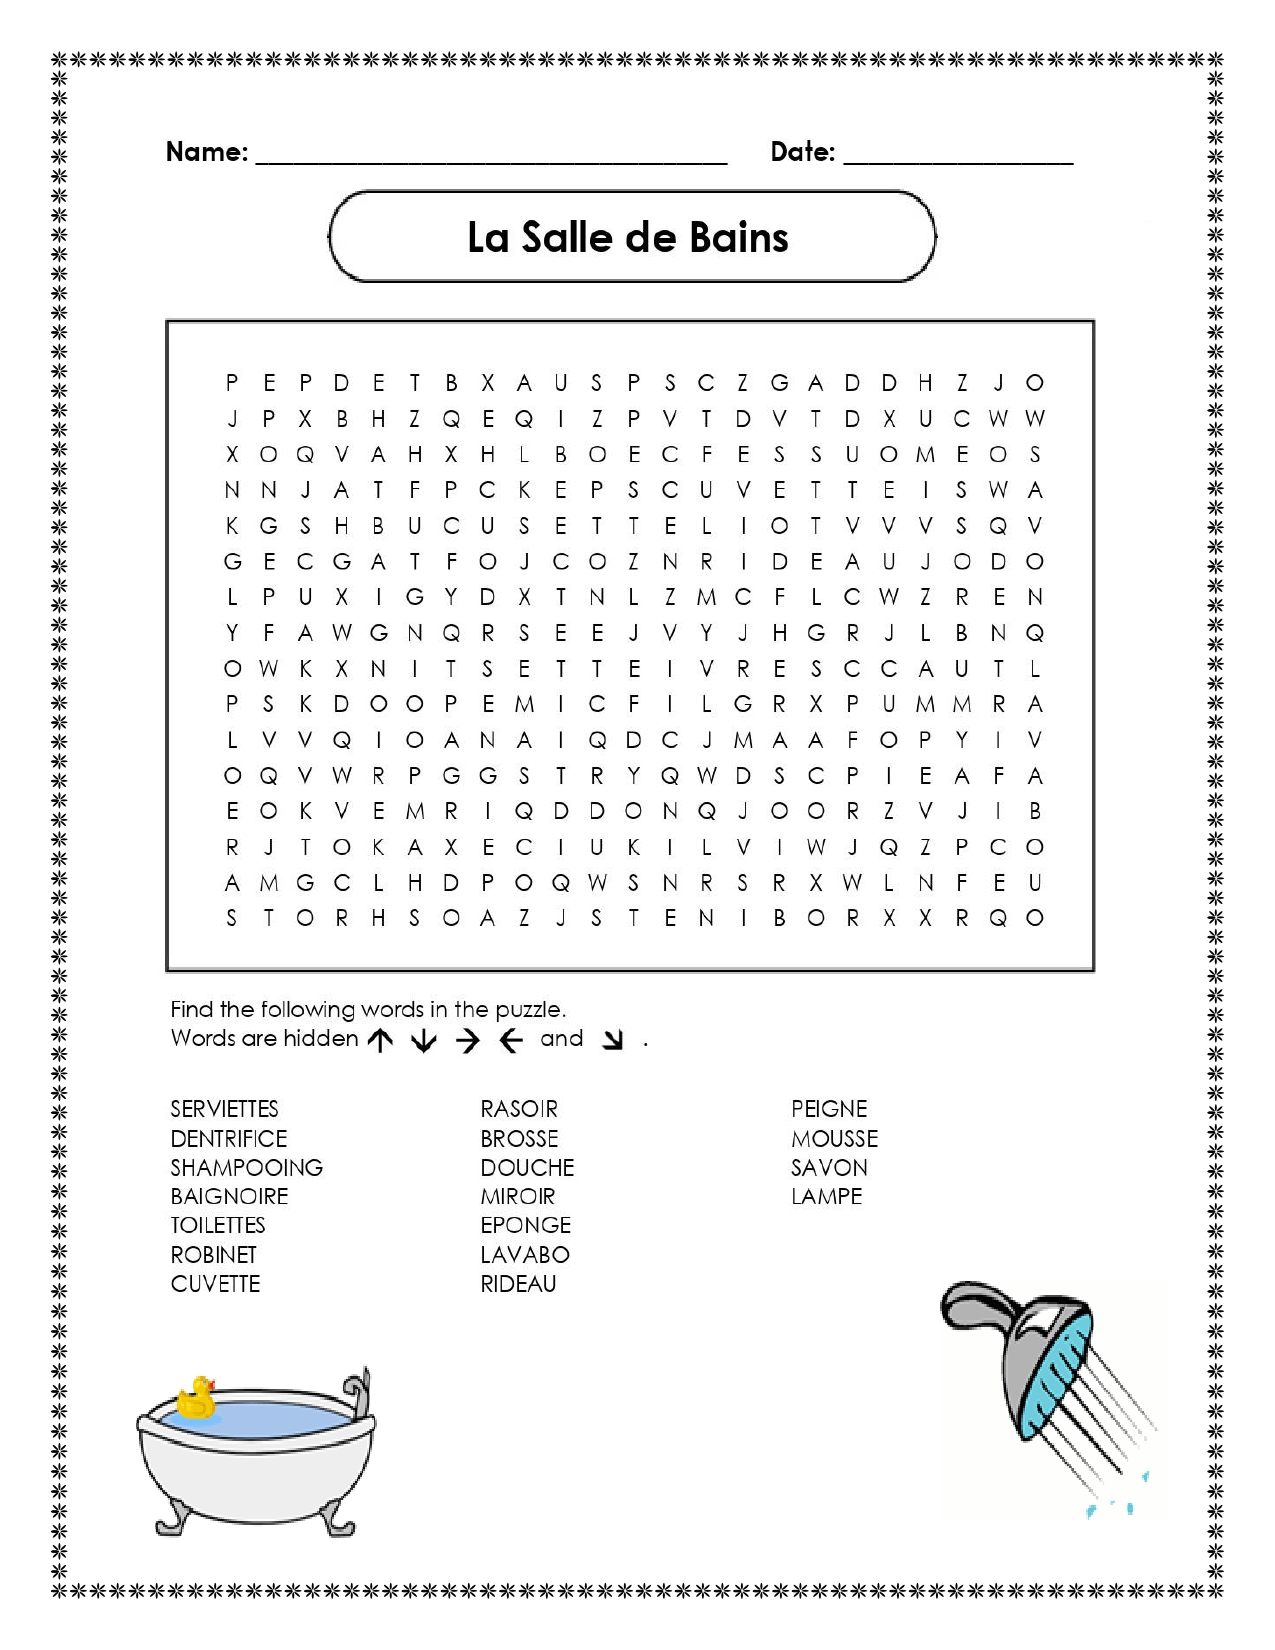 La Salle De Bains French Bathroom Distance Learning